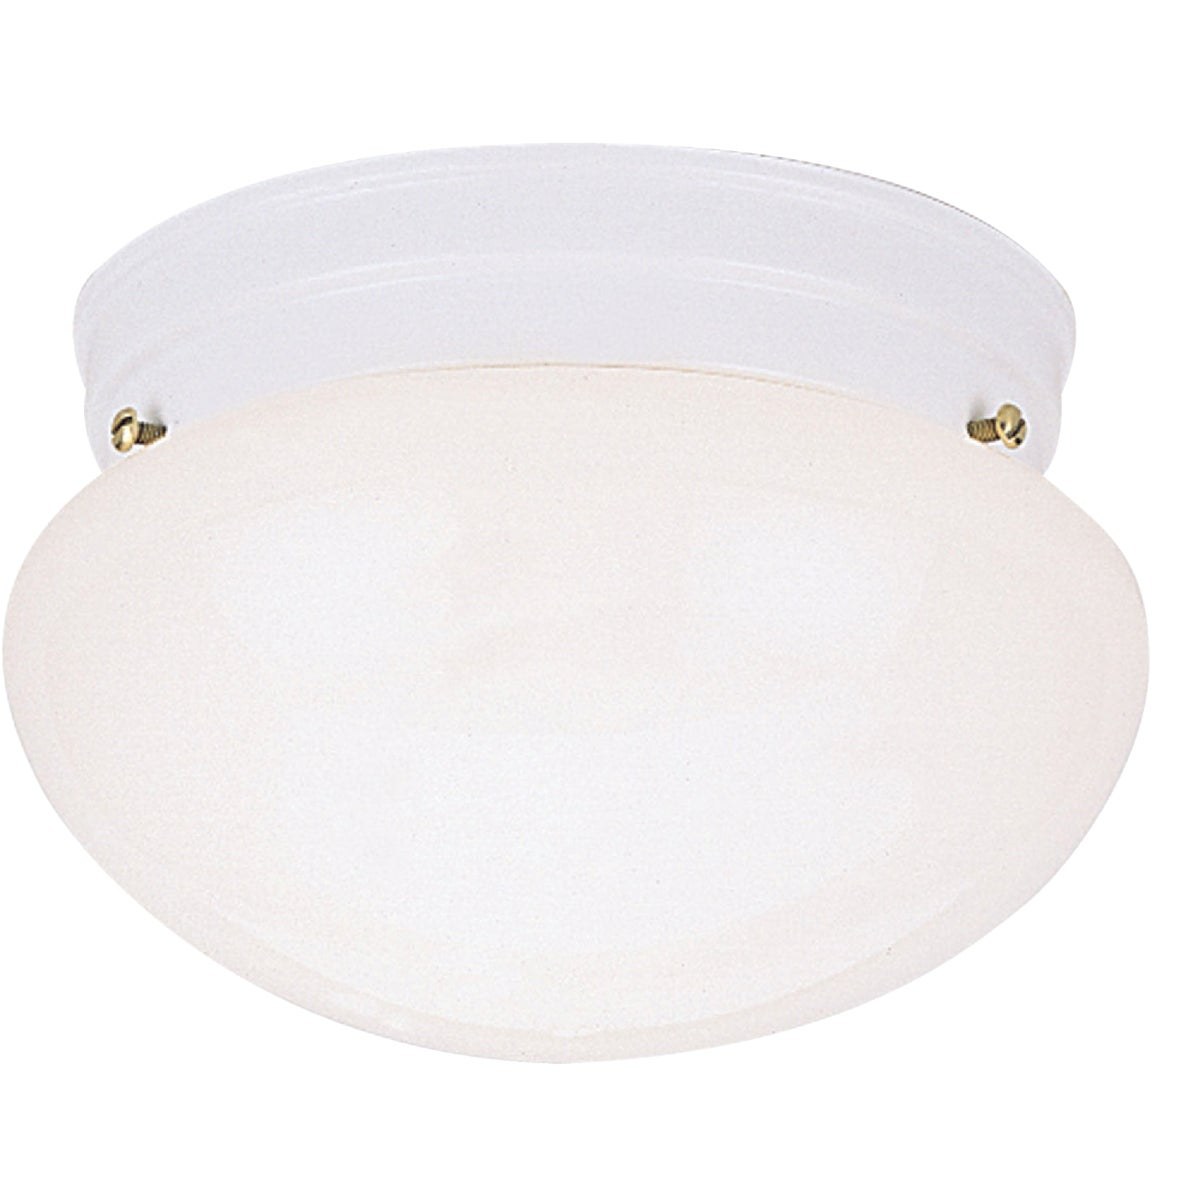 2BULB WH CEILING FIXTURE